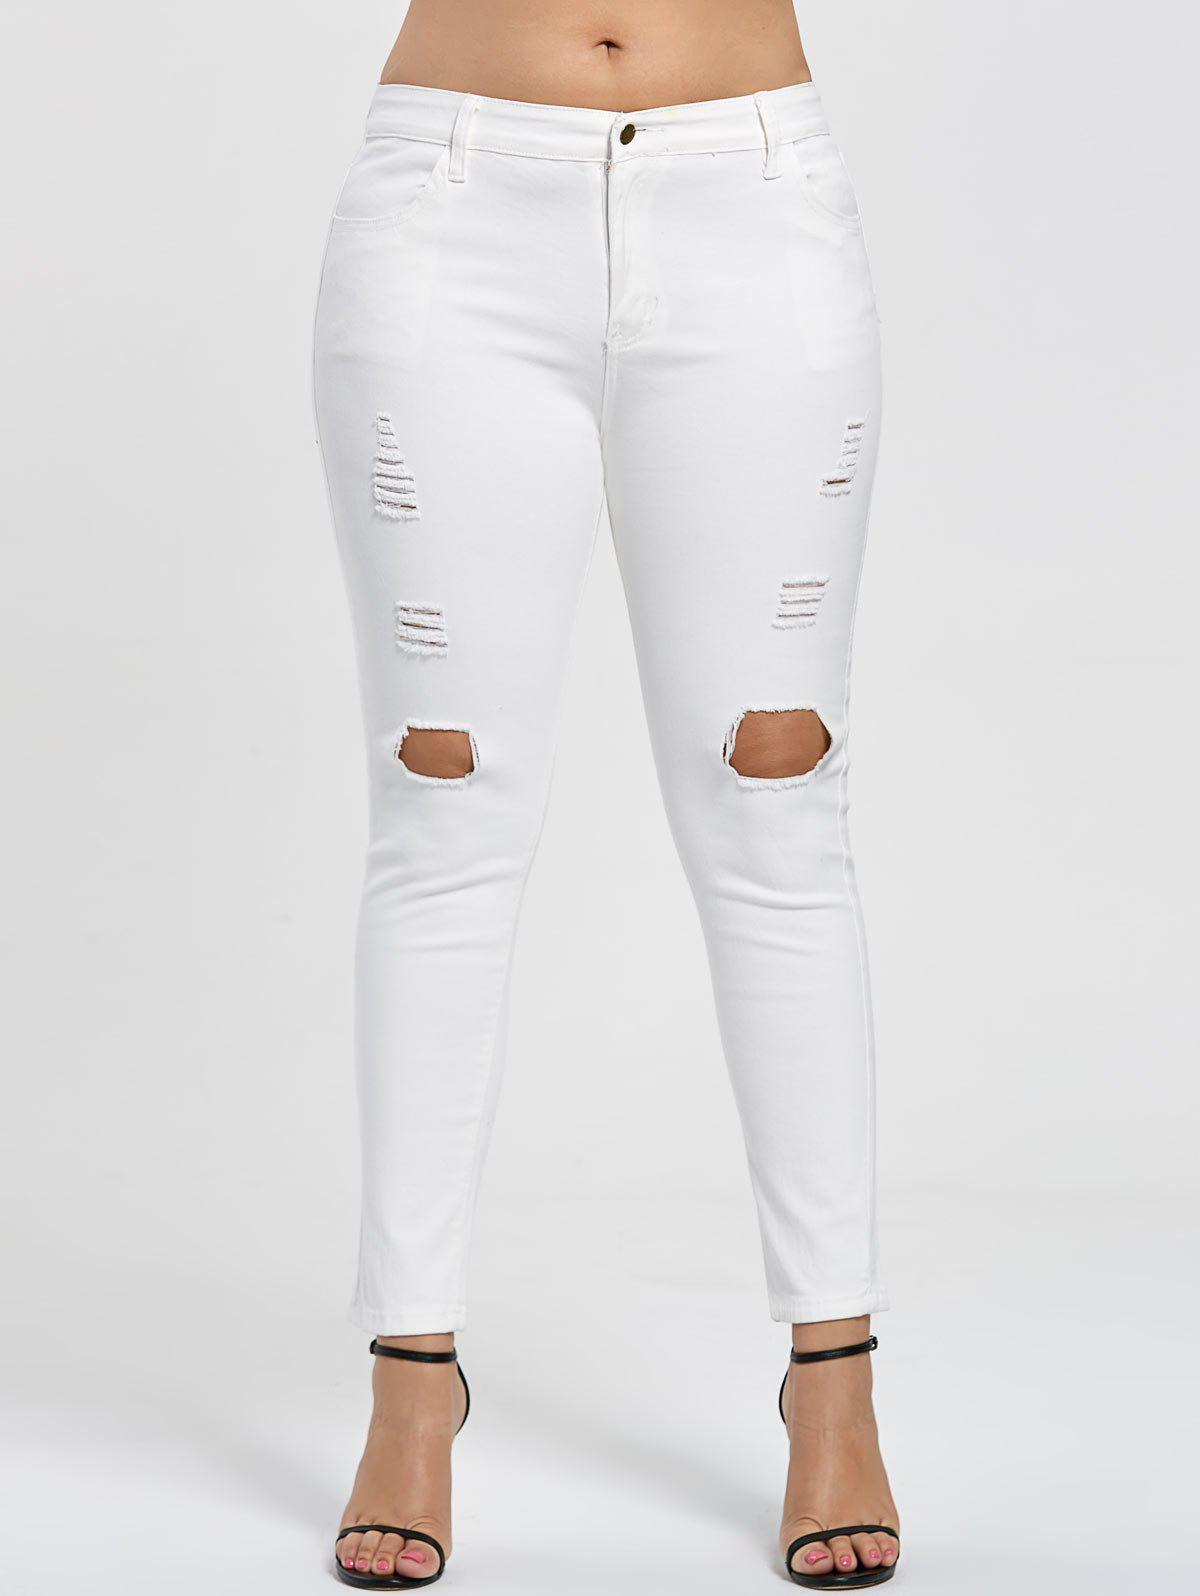 Slim Fit Plus Size Destroyed JeansWOMEN<br><br>Size: 5XL; Color: WHITE; Style: Fashion; Length: Ninth; Material: Jeans; Fabric Type: Denim; Fit Type: Skinny; Waist Type: Low; Closure Type: Zipper Fly; Pattern Type: Solid; Embellishment: Hole,Pockets; Pant Style: Pencil Pants; Weight: 0.4800kg; Package Contents: 1 x Jeans;